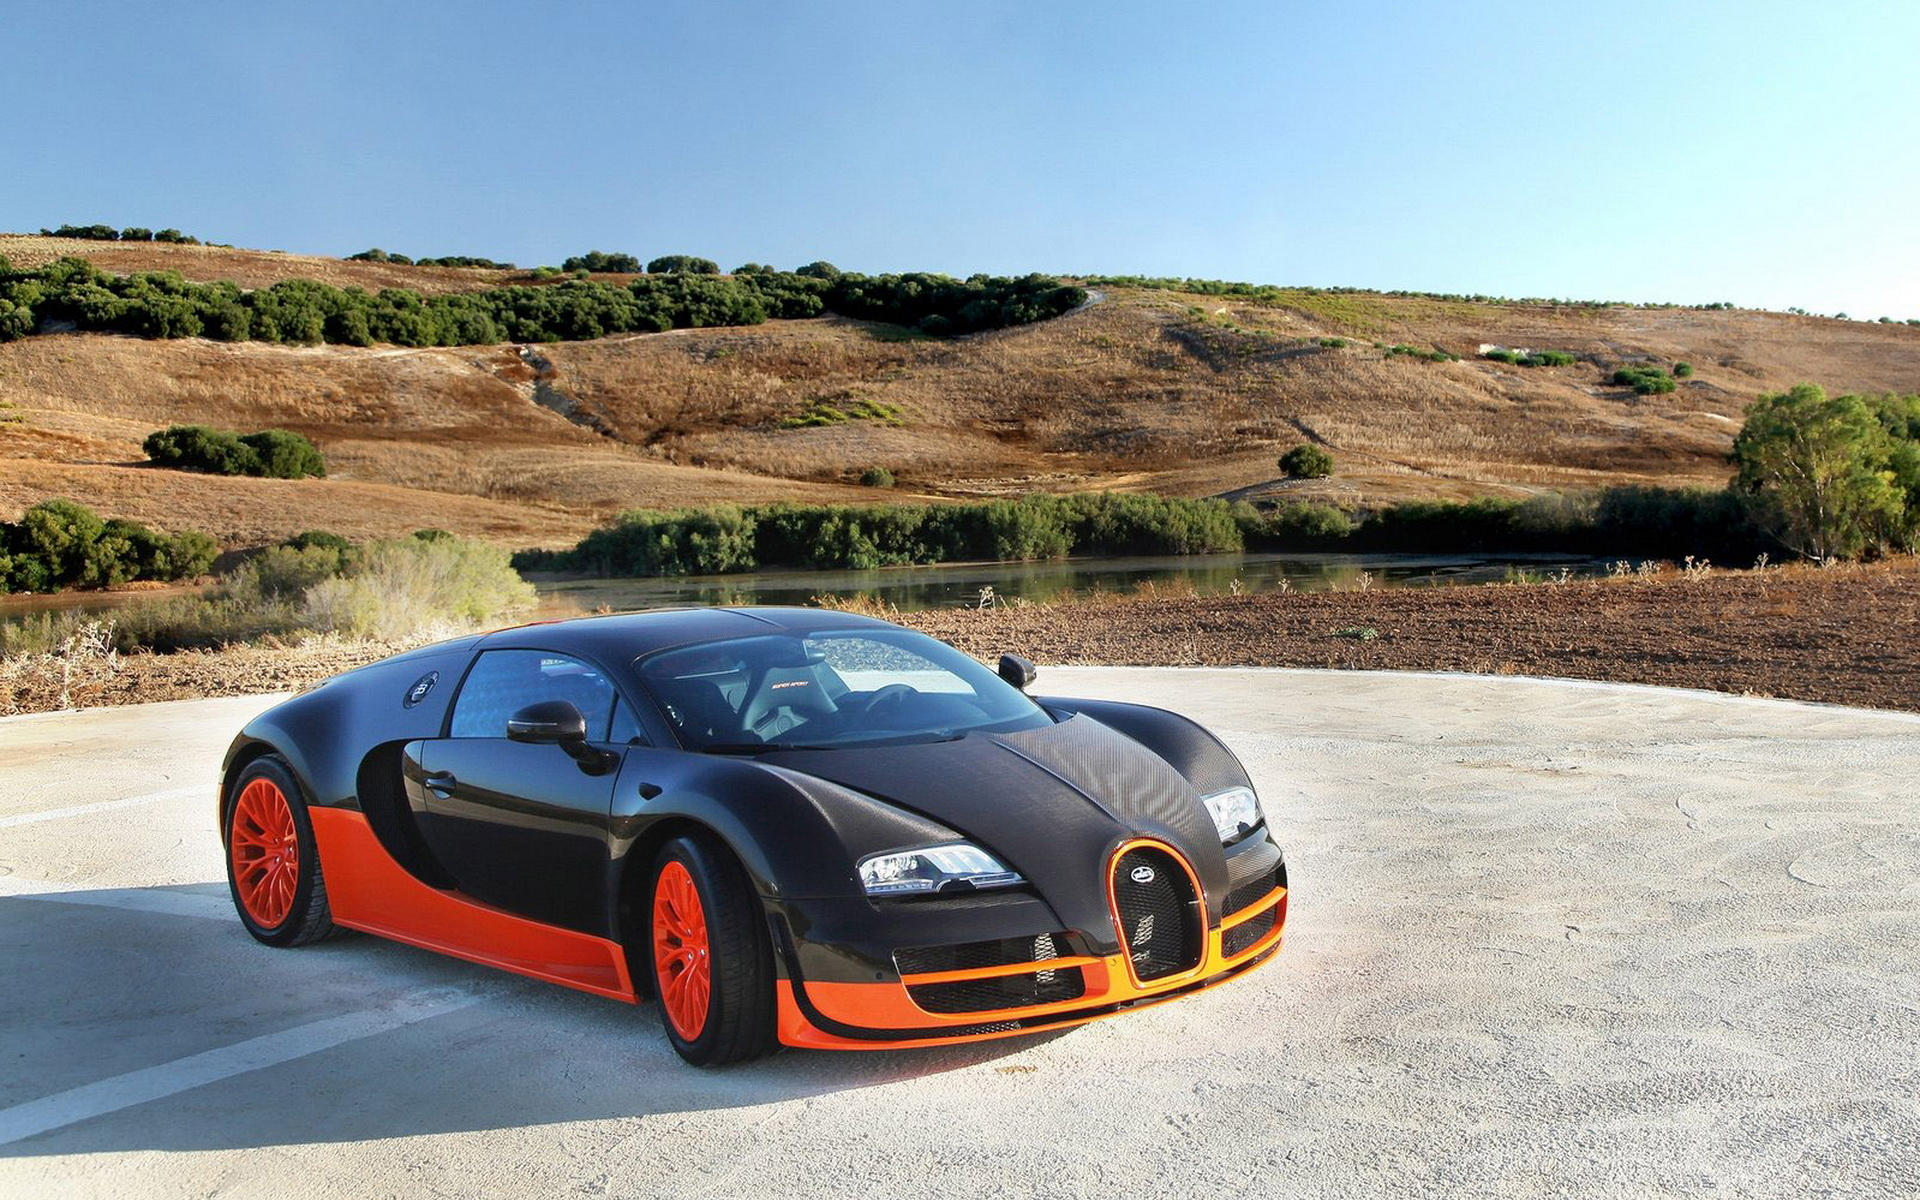 Blue Bugatti Veyron Super Sport Wallpaper: Bugatti Veyron Super Sport Wallpaper X Plpozzd